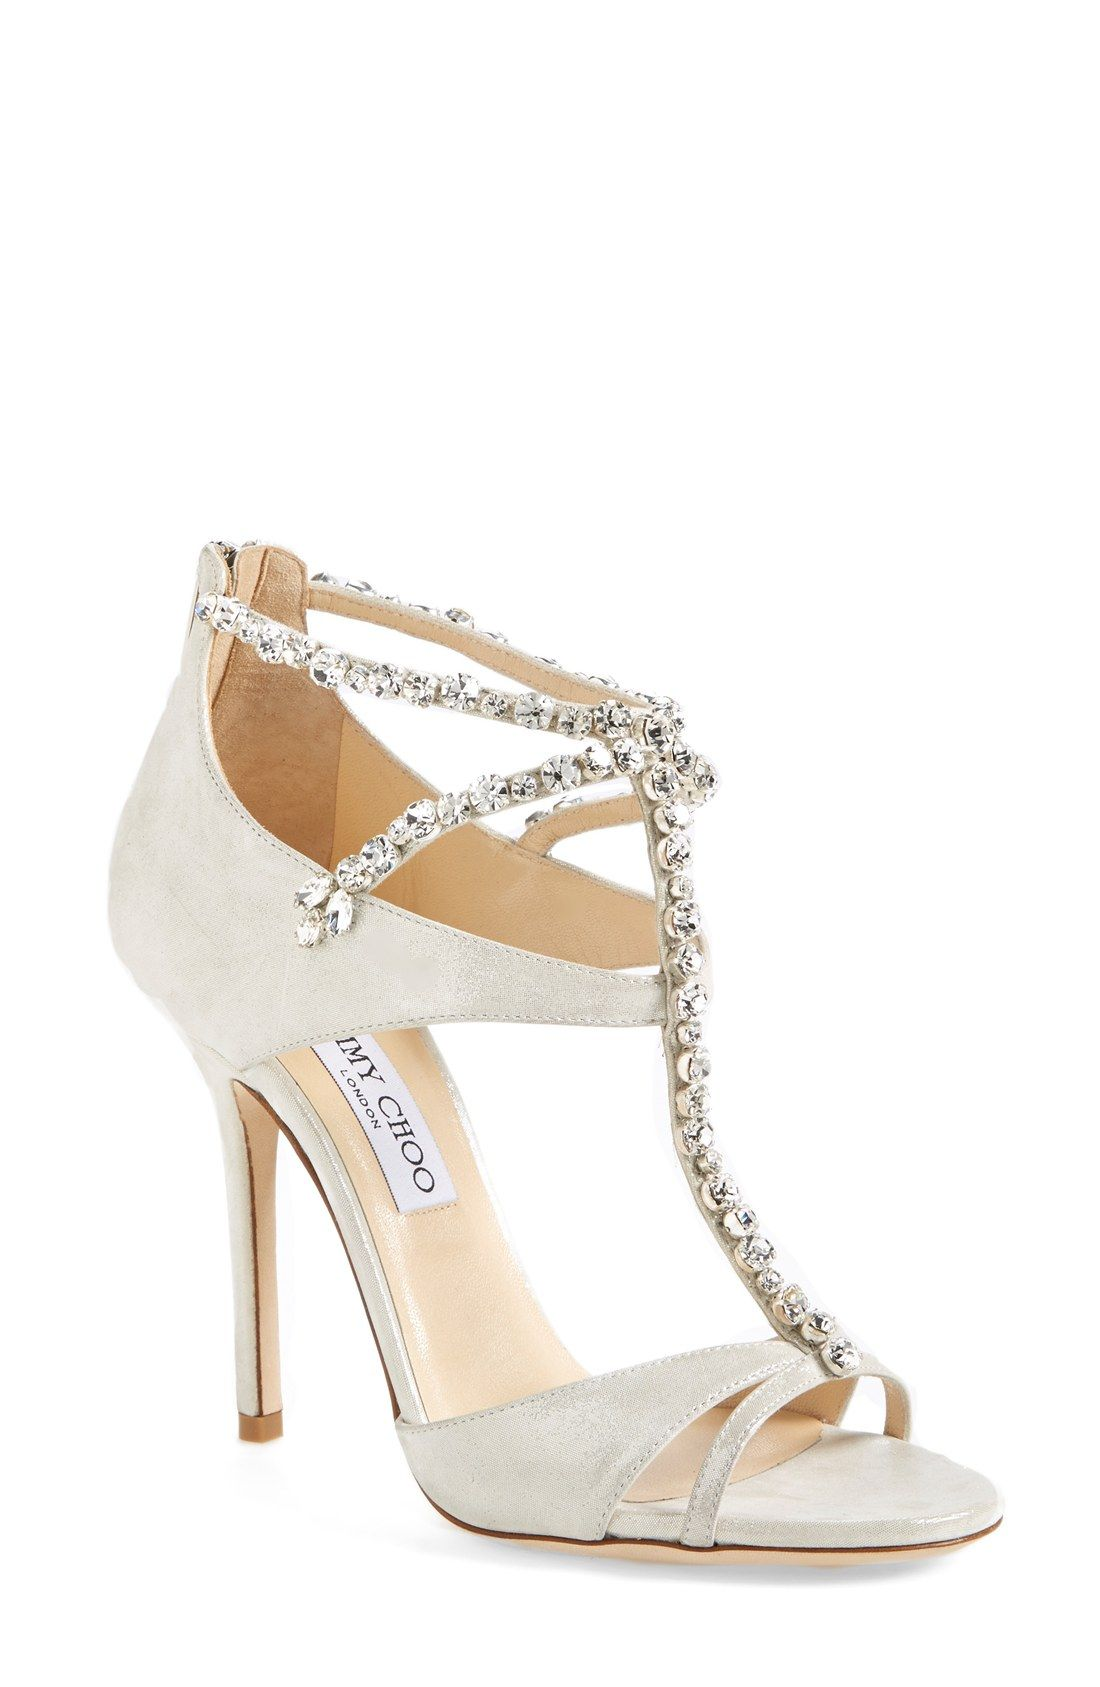 d2bdb504ab30 Gorgeous Jimmy Choo crystal sandal. The perfect wedding shoes!